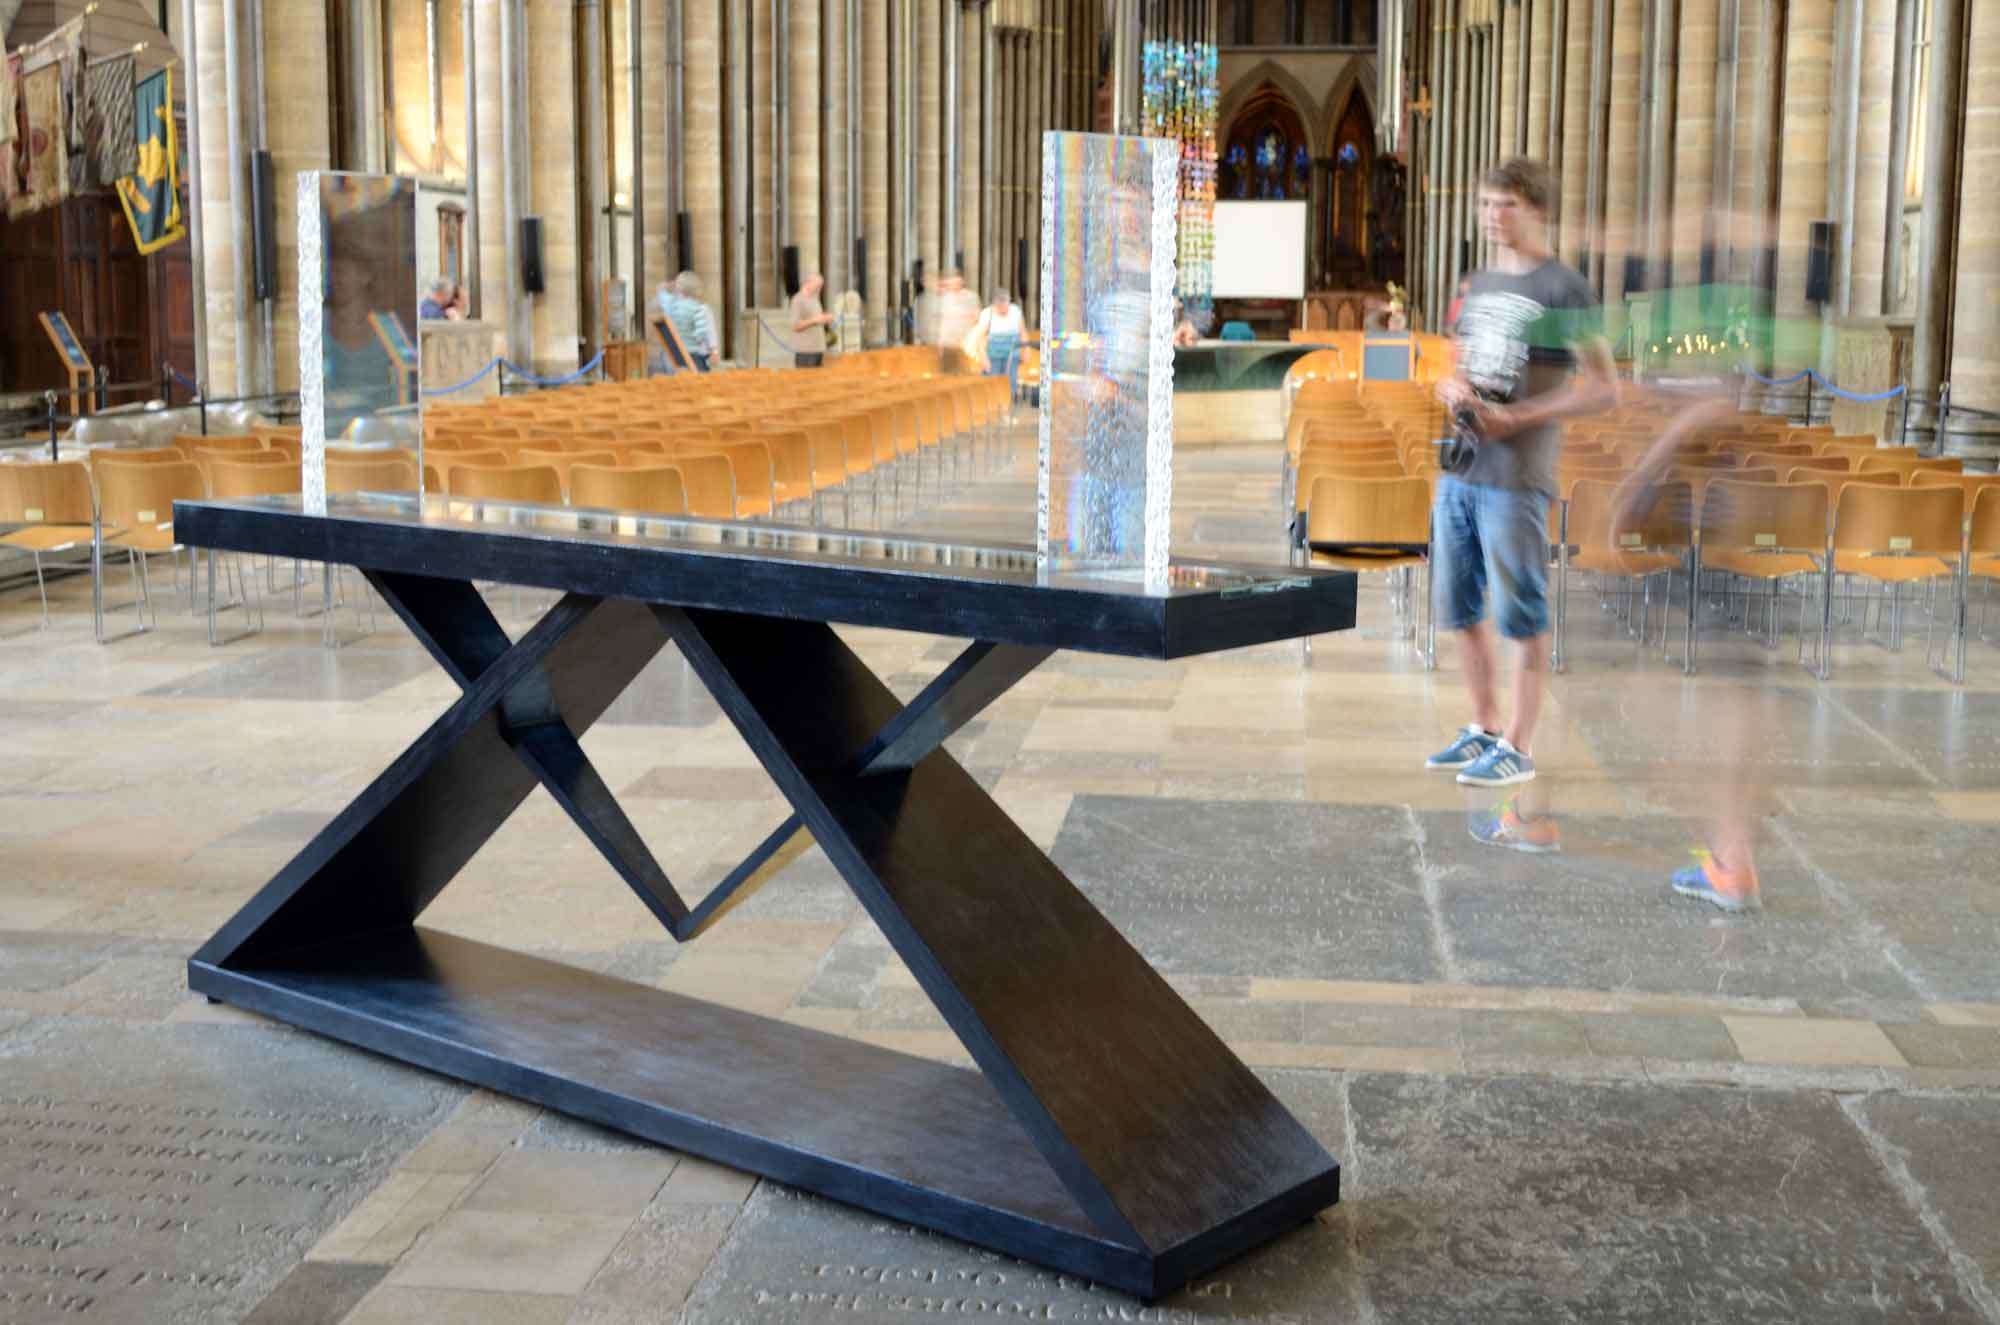 Reflections exhibition at Salisbury Cathedral